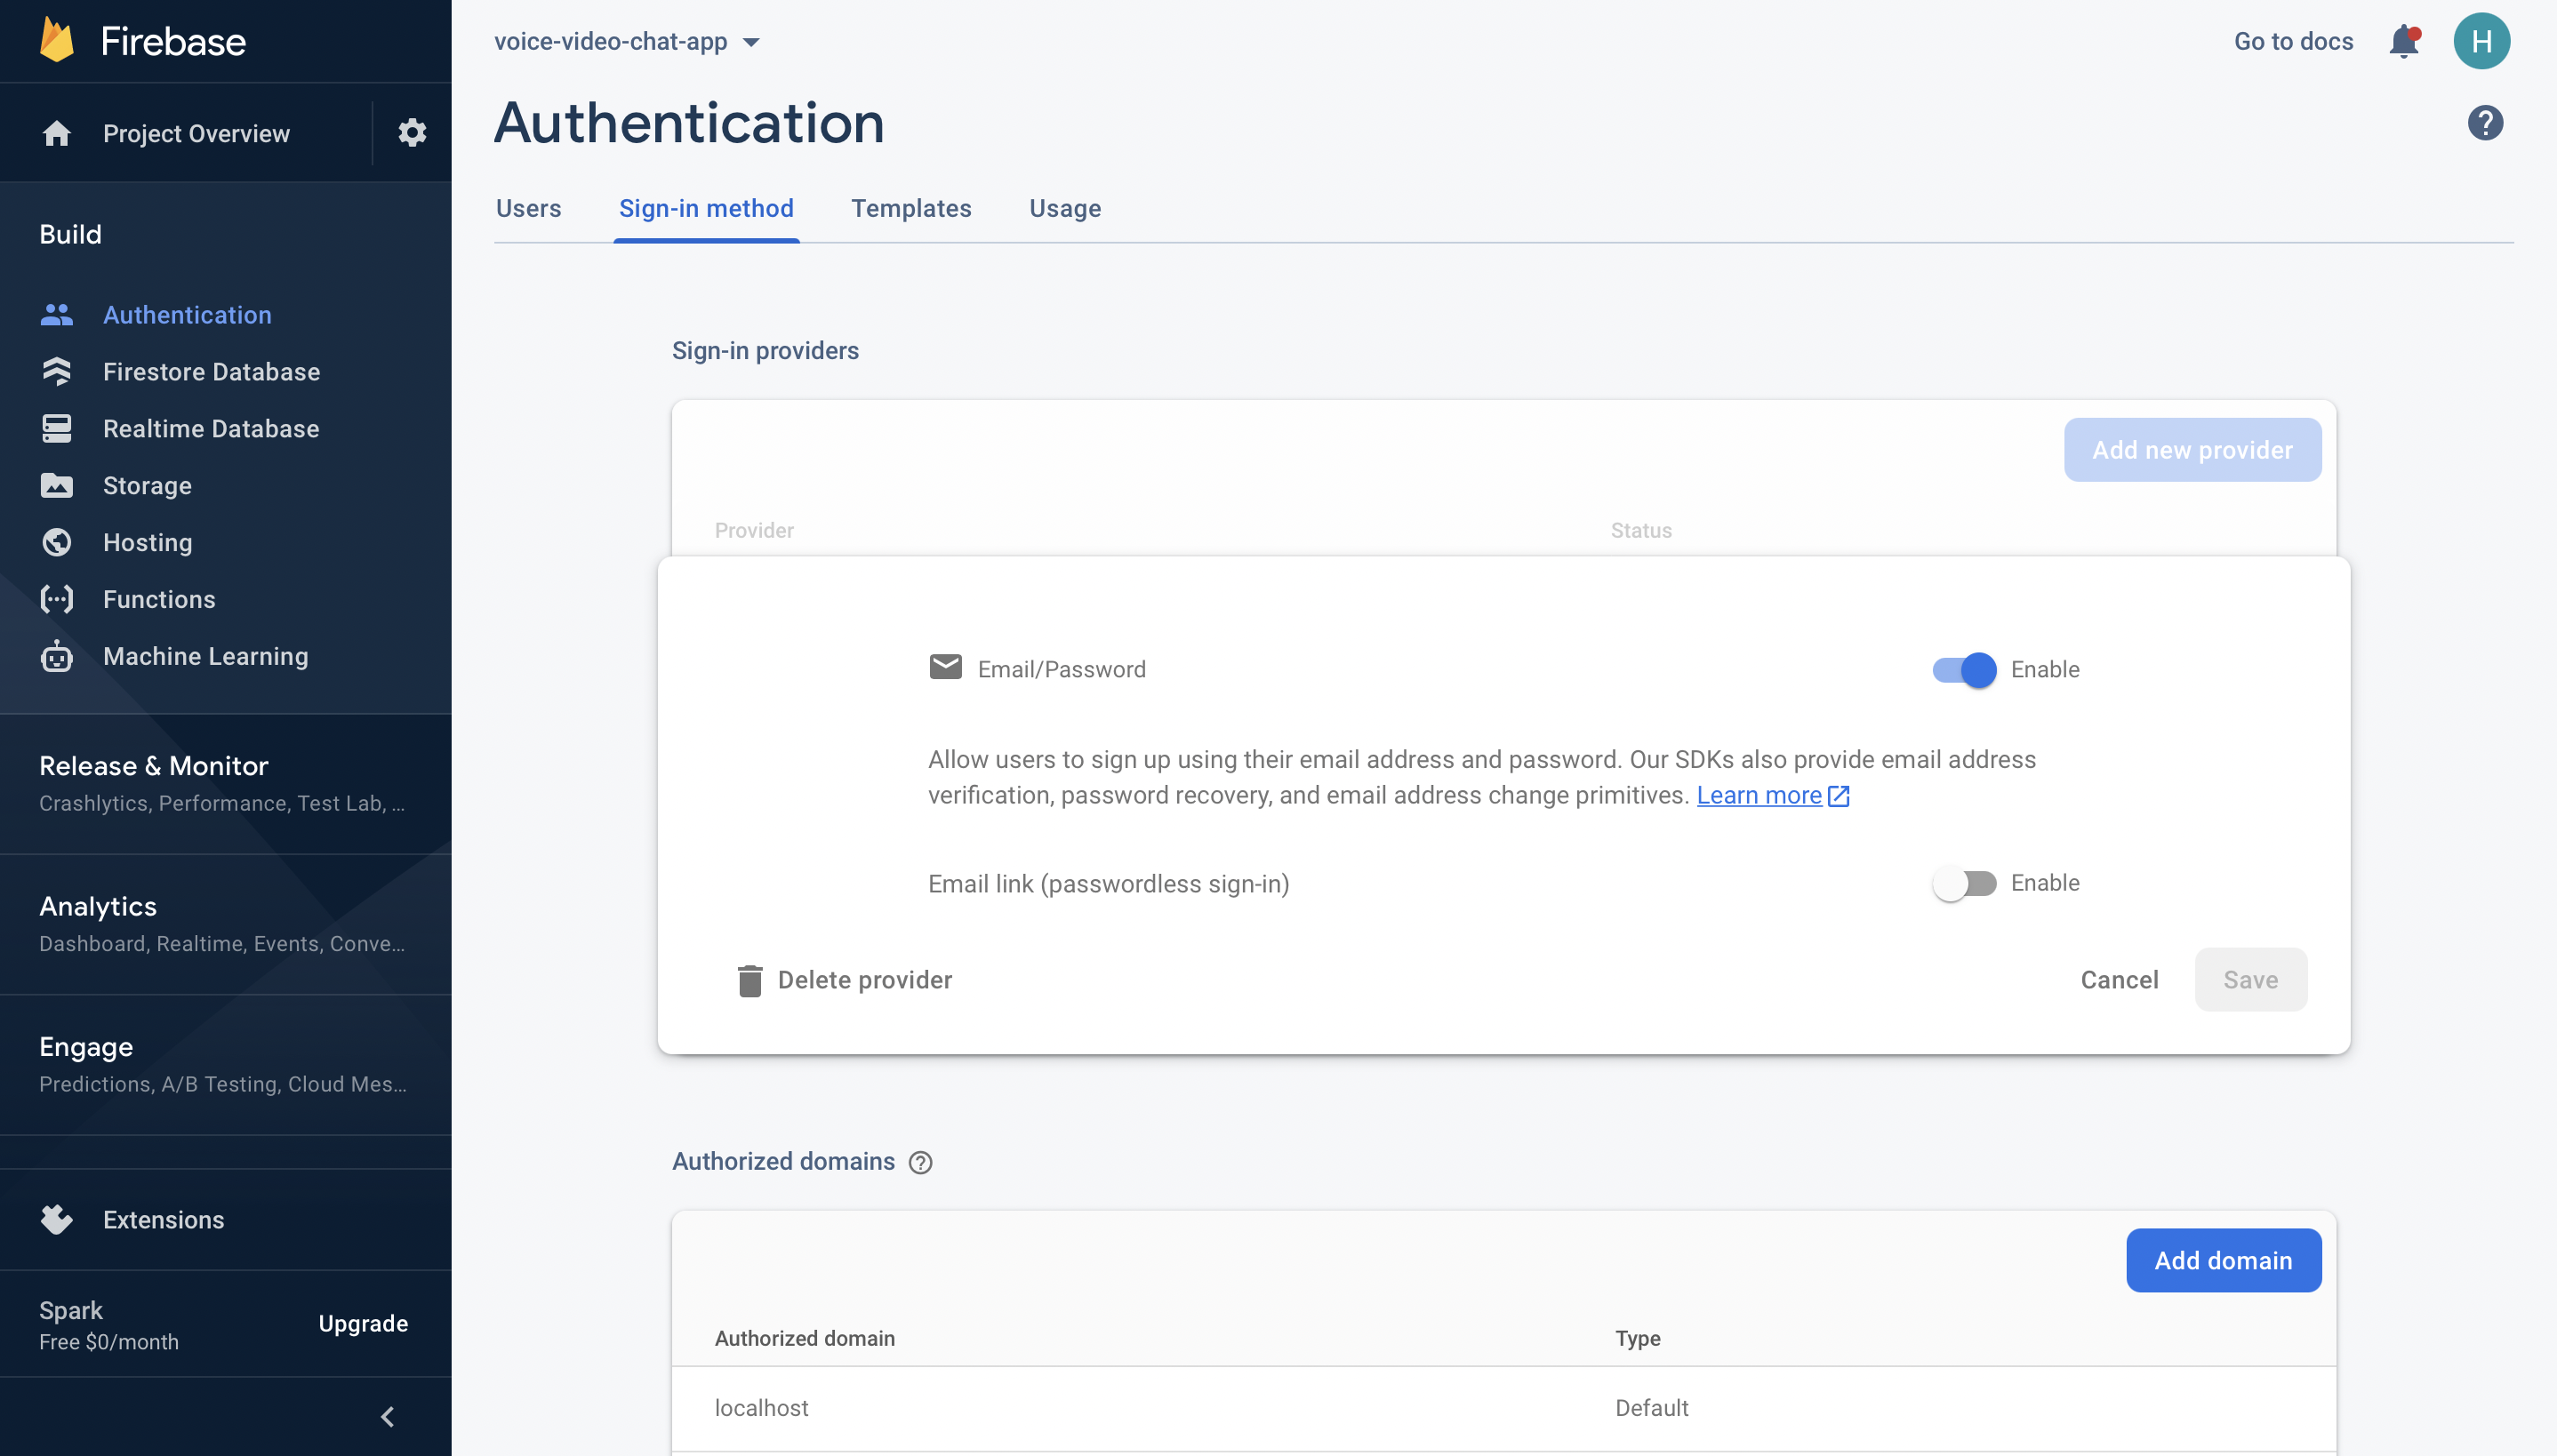 Enable Firebase Authentication with Email and Password